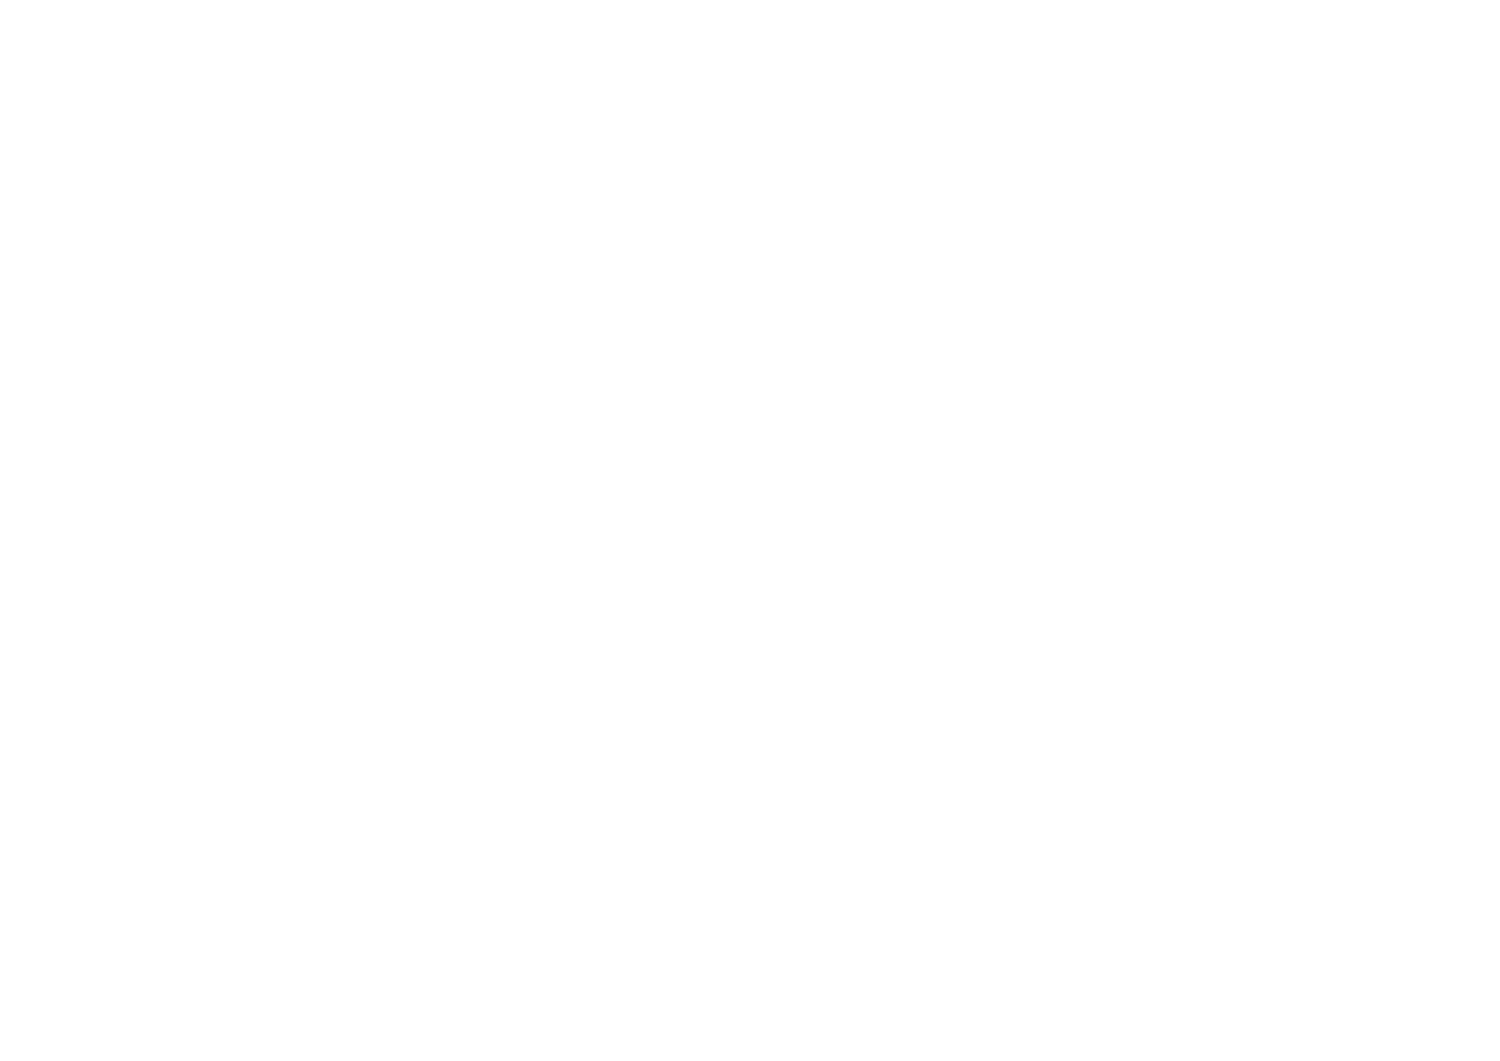 Kødbyens IS